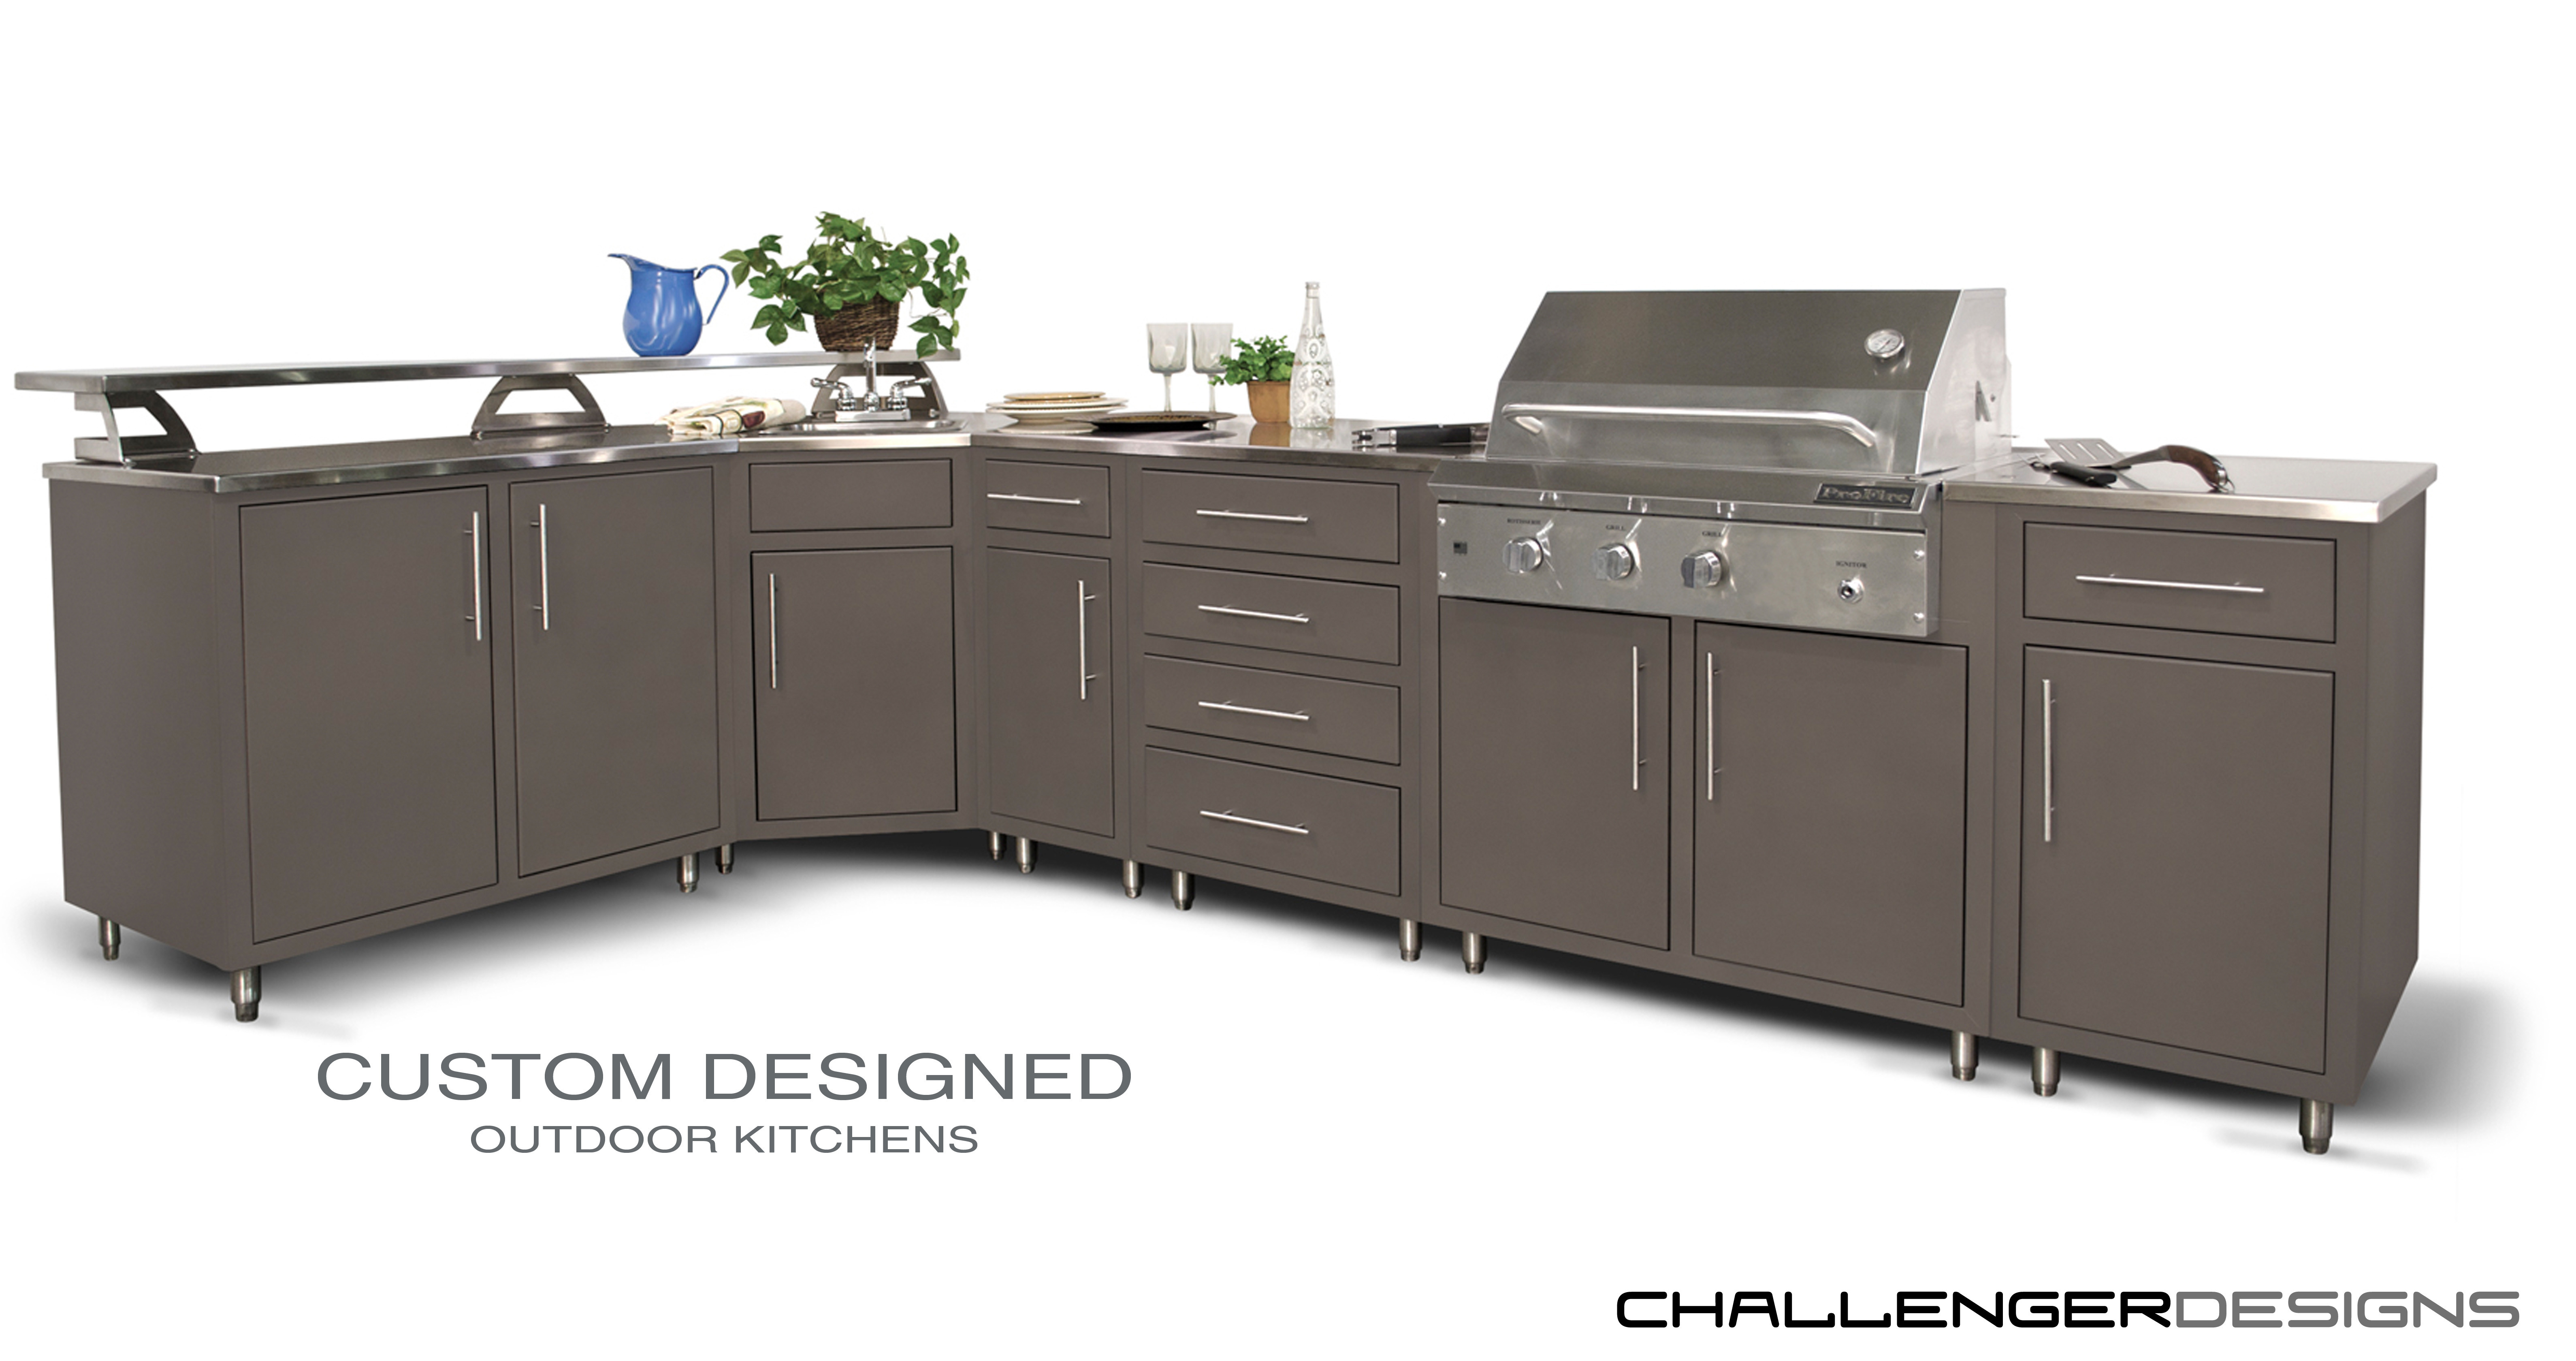 Challenger Designs Modular Outdoor Kitchen | Ajax Pool & Spa ...